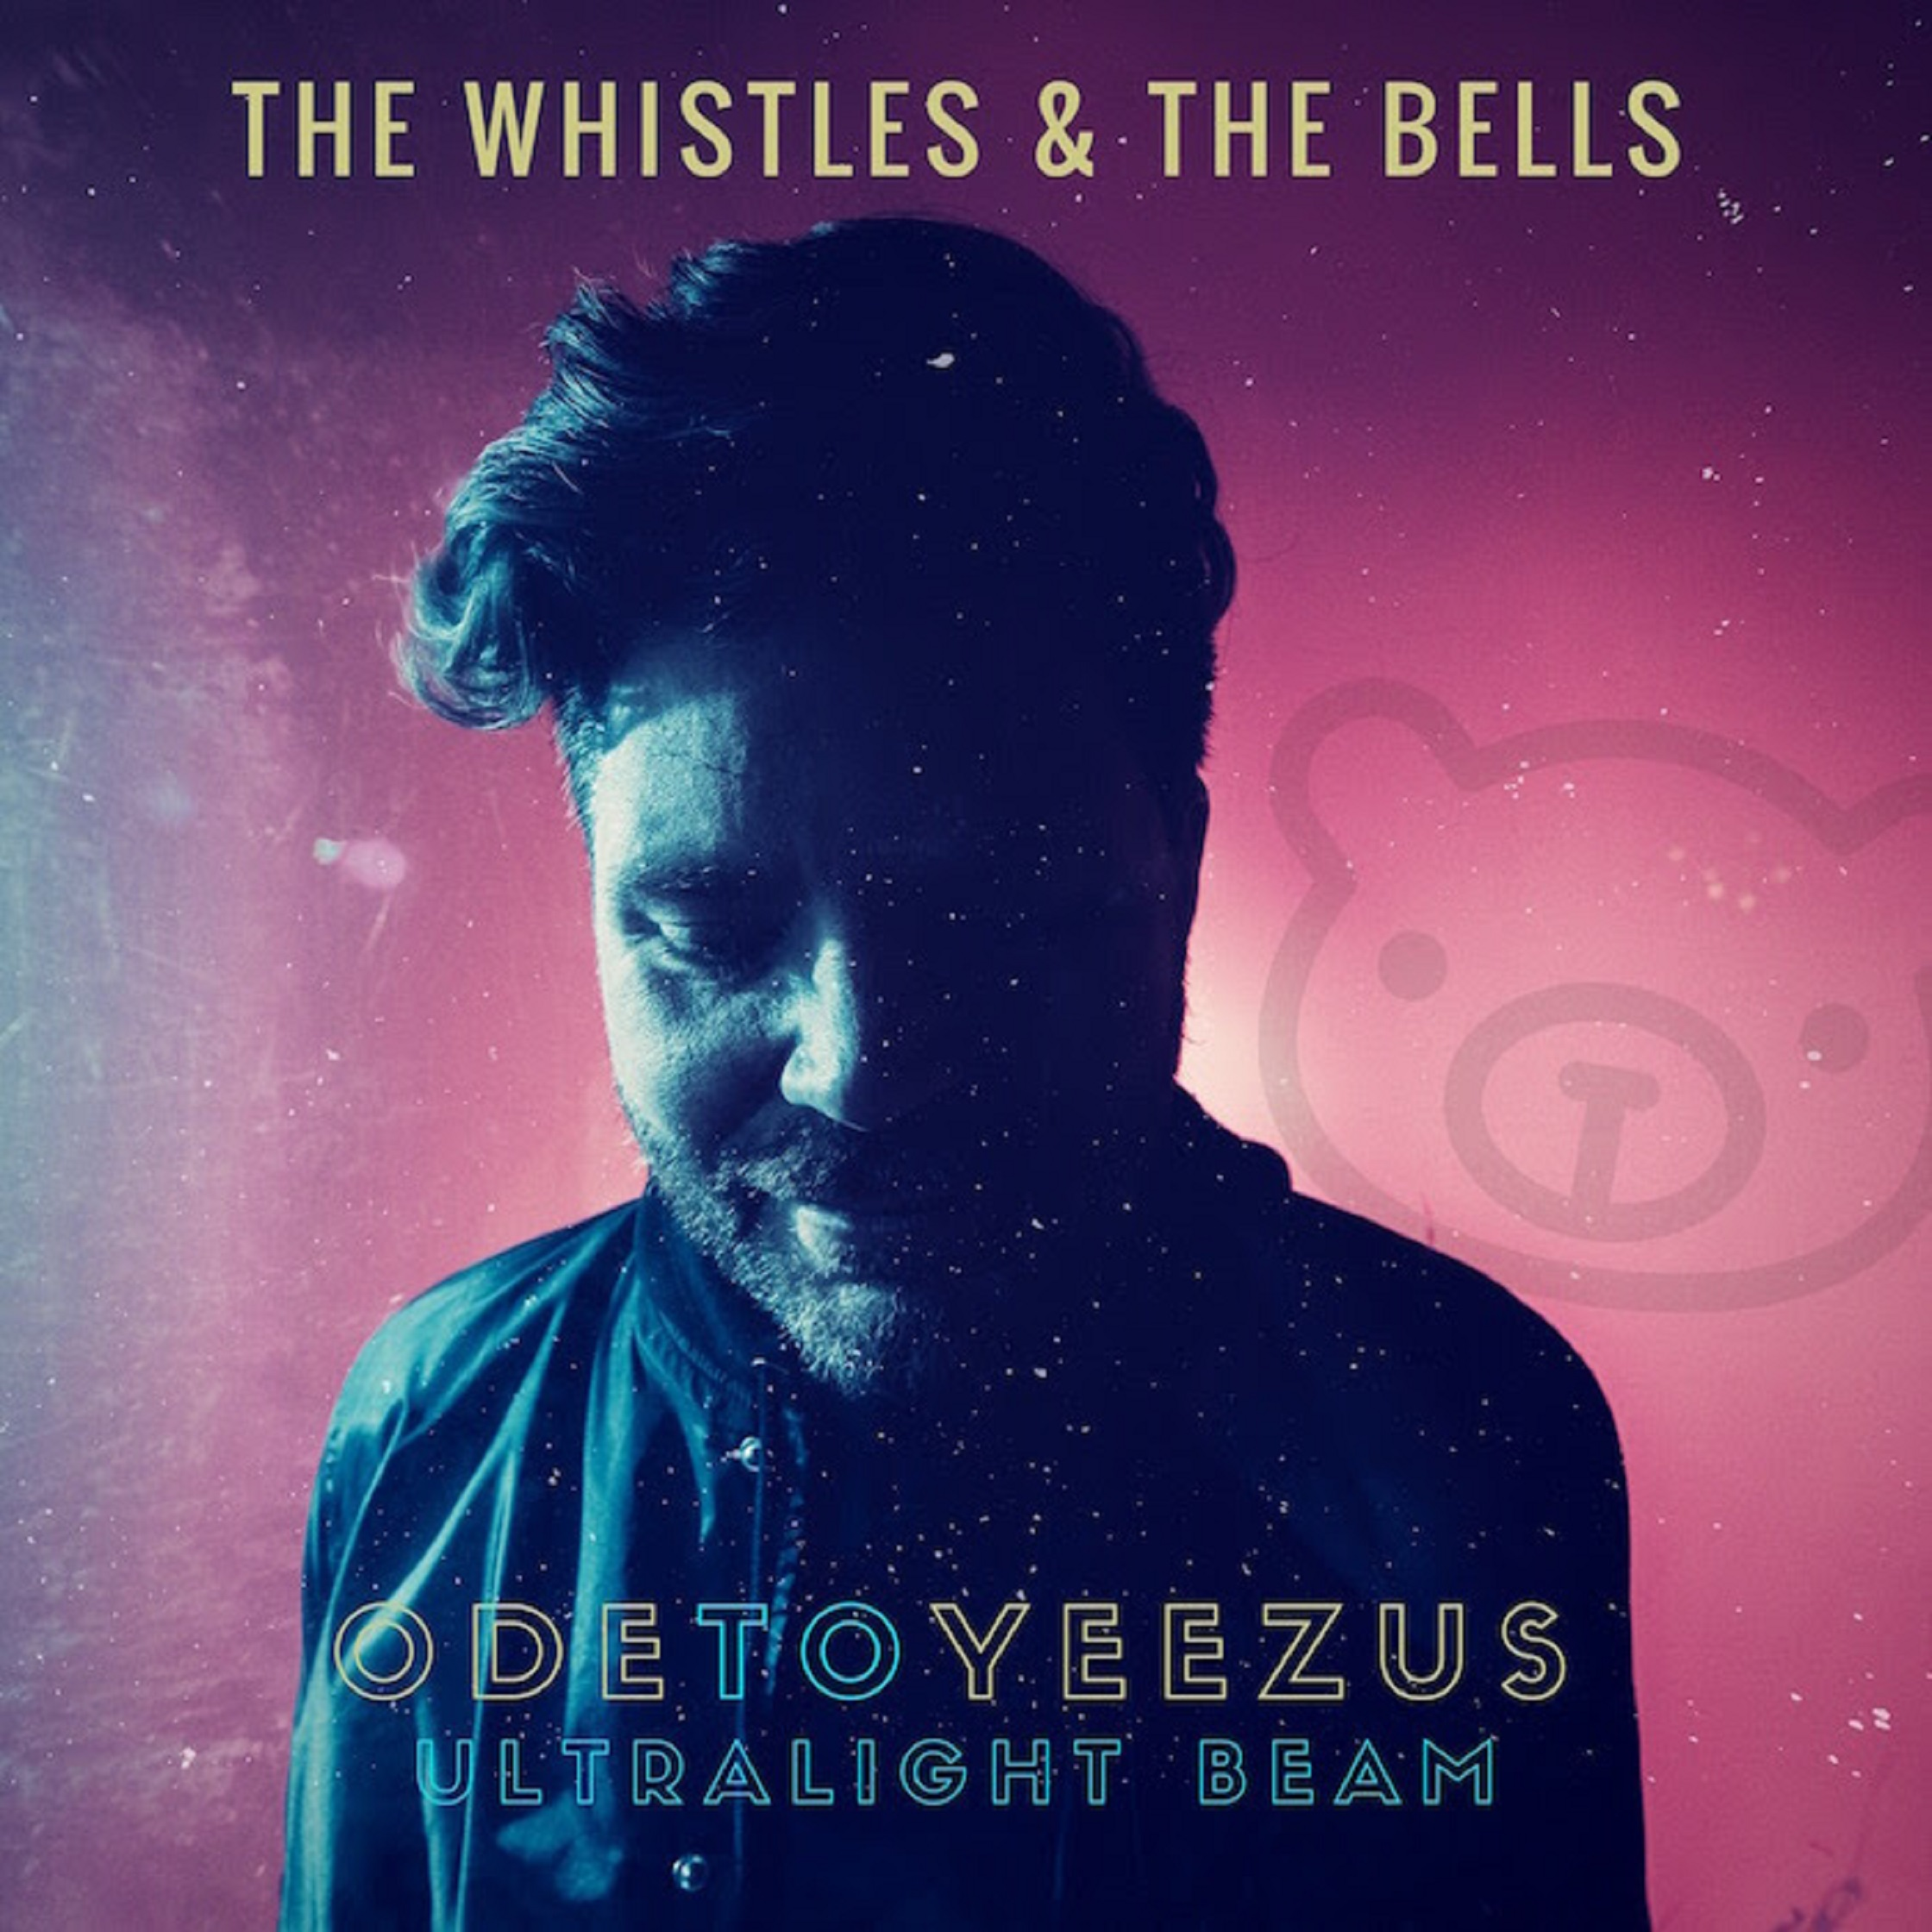 THE WHISTLES & THE BELLS REVEALS NEW SONG